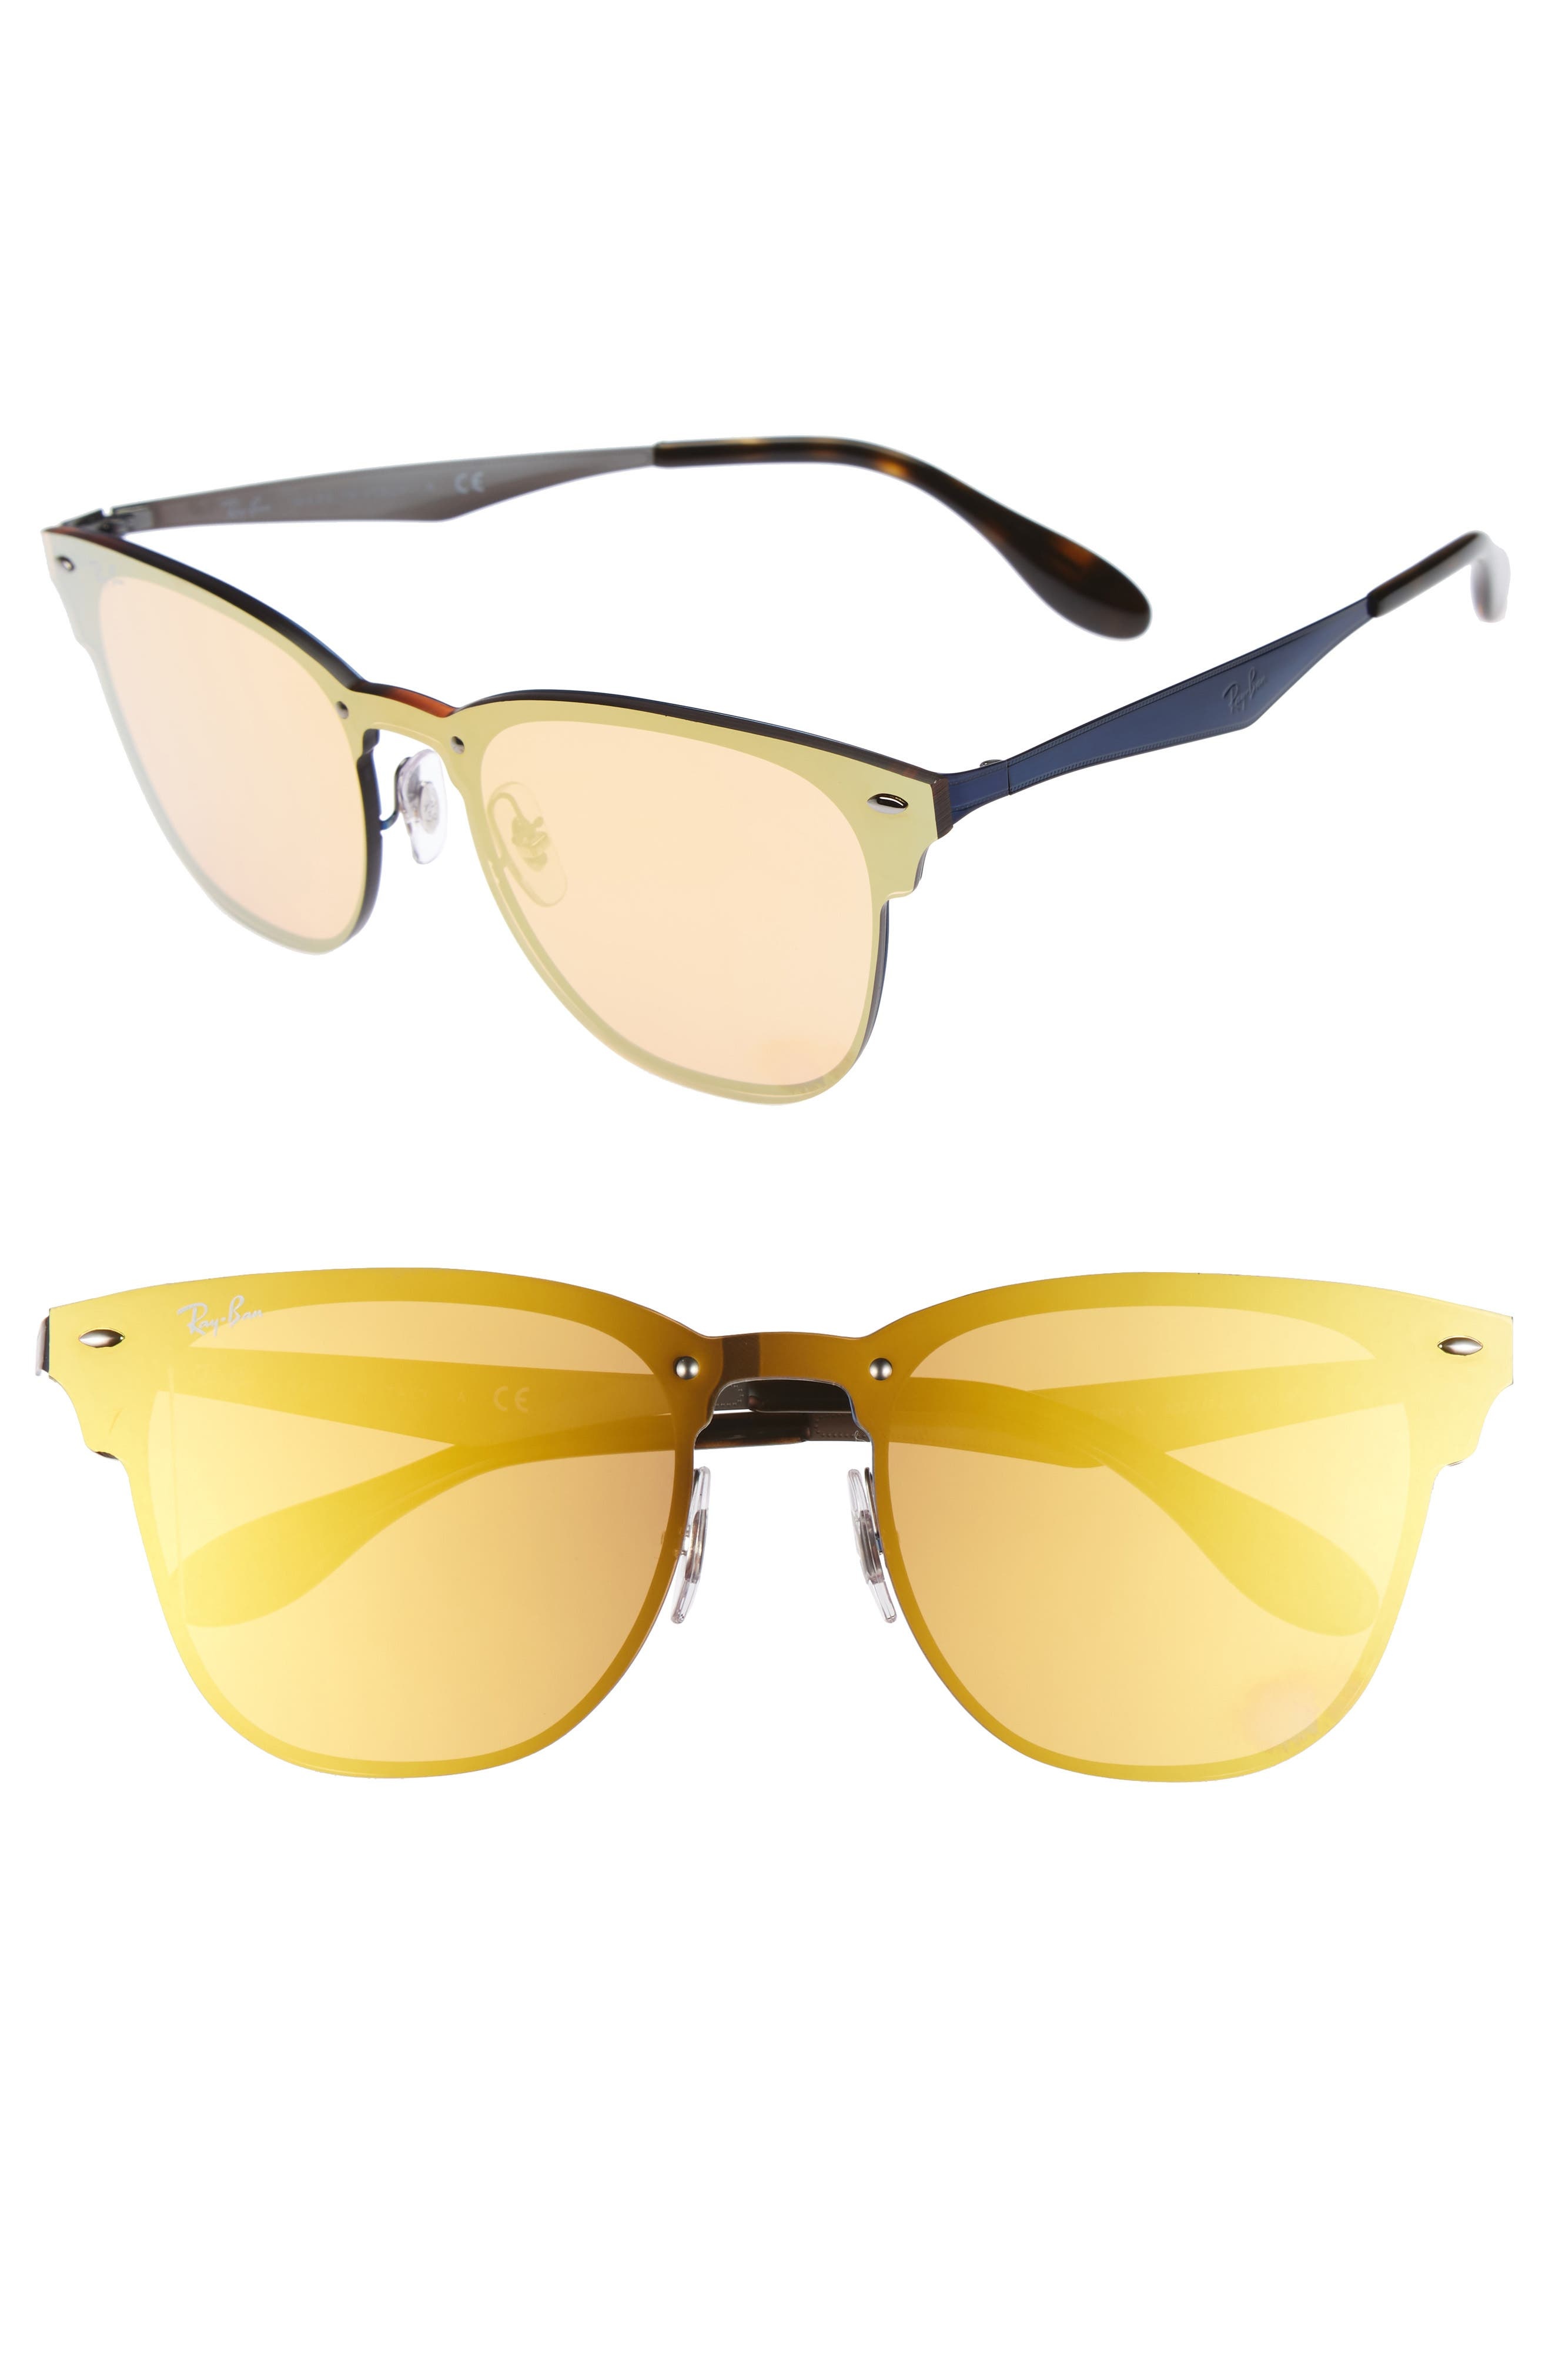 Alternate Image 1 Selected - Ray-Ban 52mm Mirrored Sunglasses